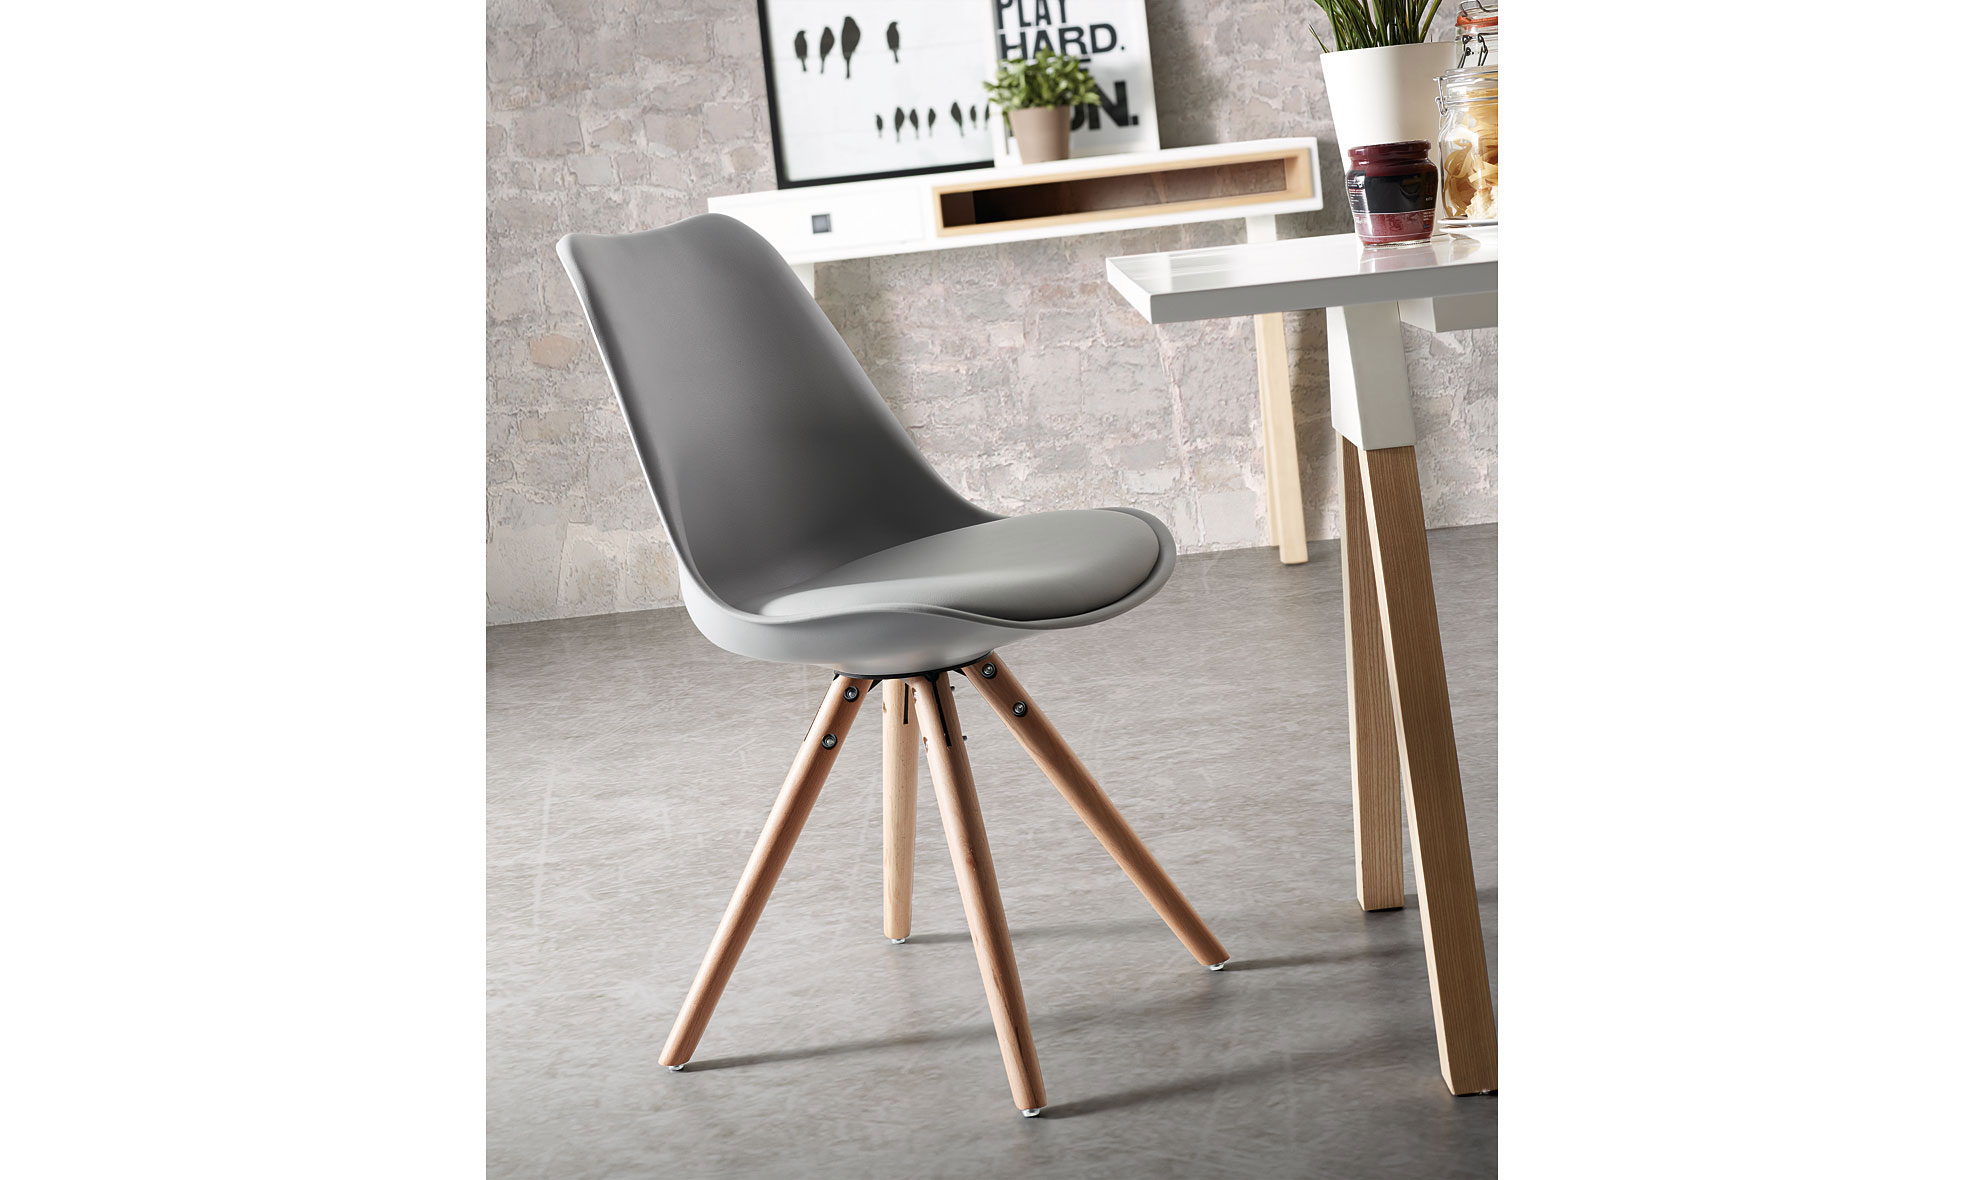 Silla gris moderna ralf en for Sillas comedor color gris